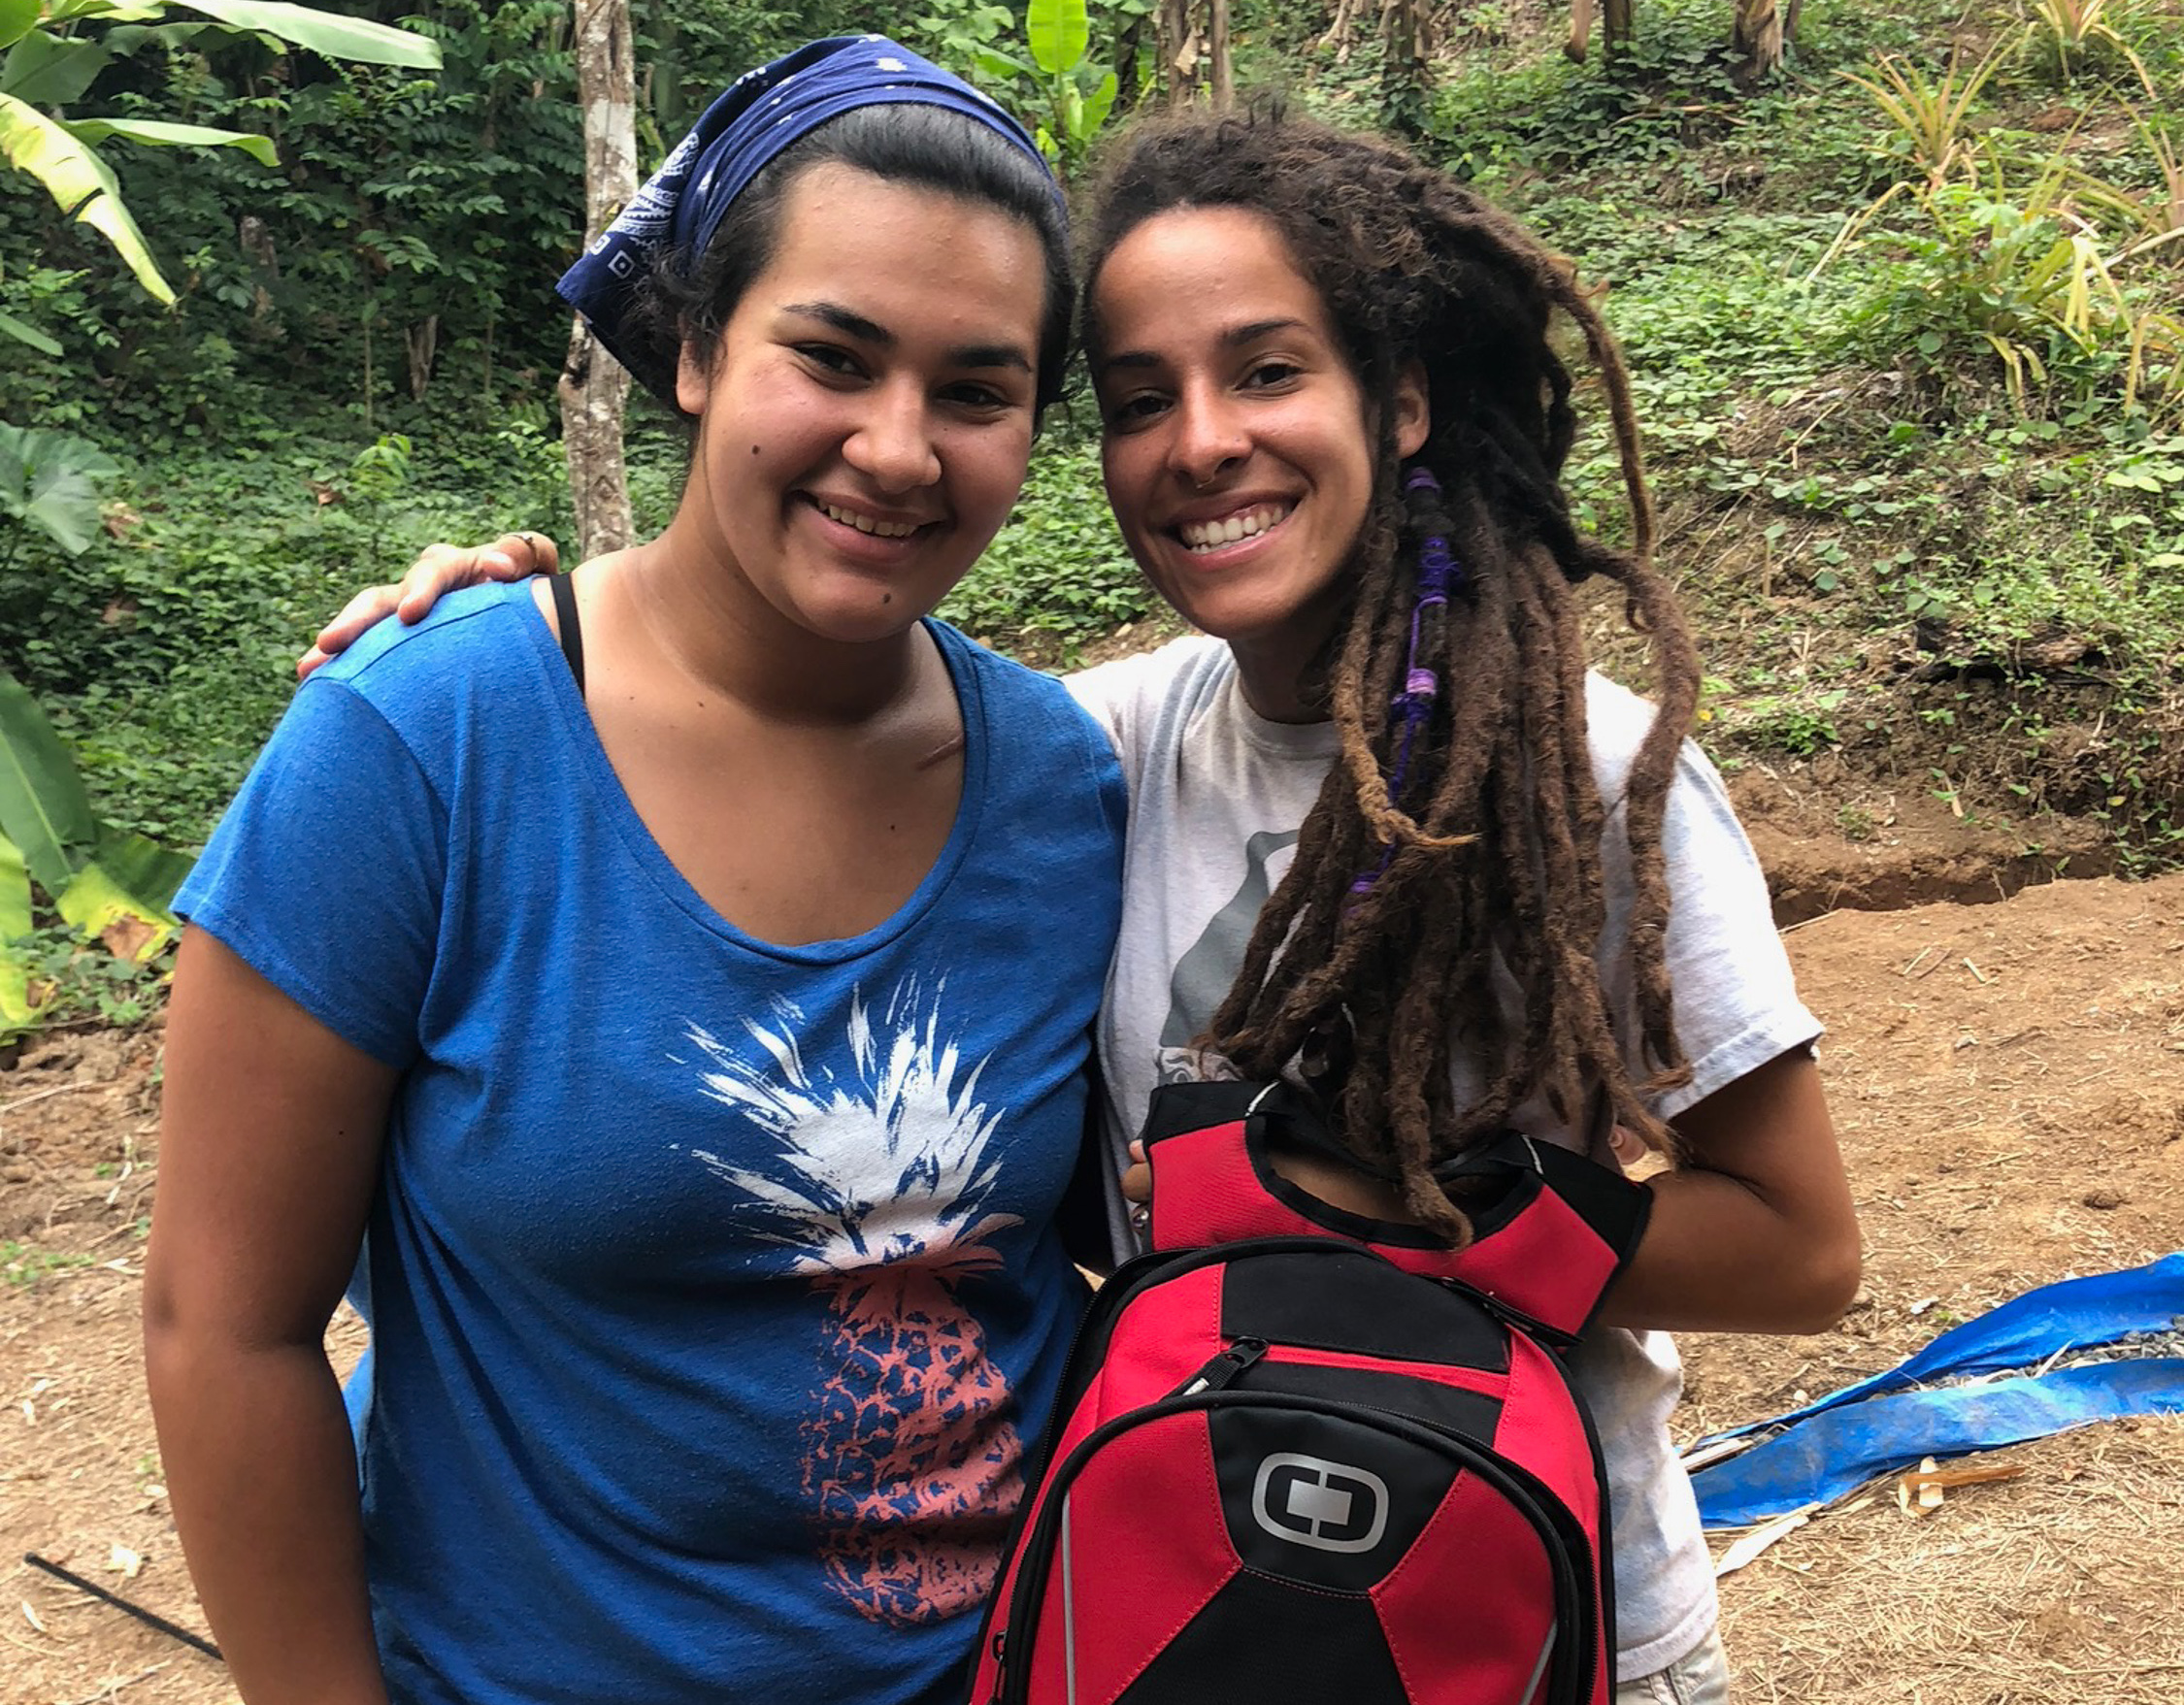 Backpackers Share Their Experience and Rally Support for Puerto Rico 2019